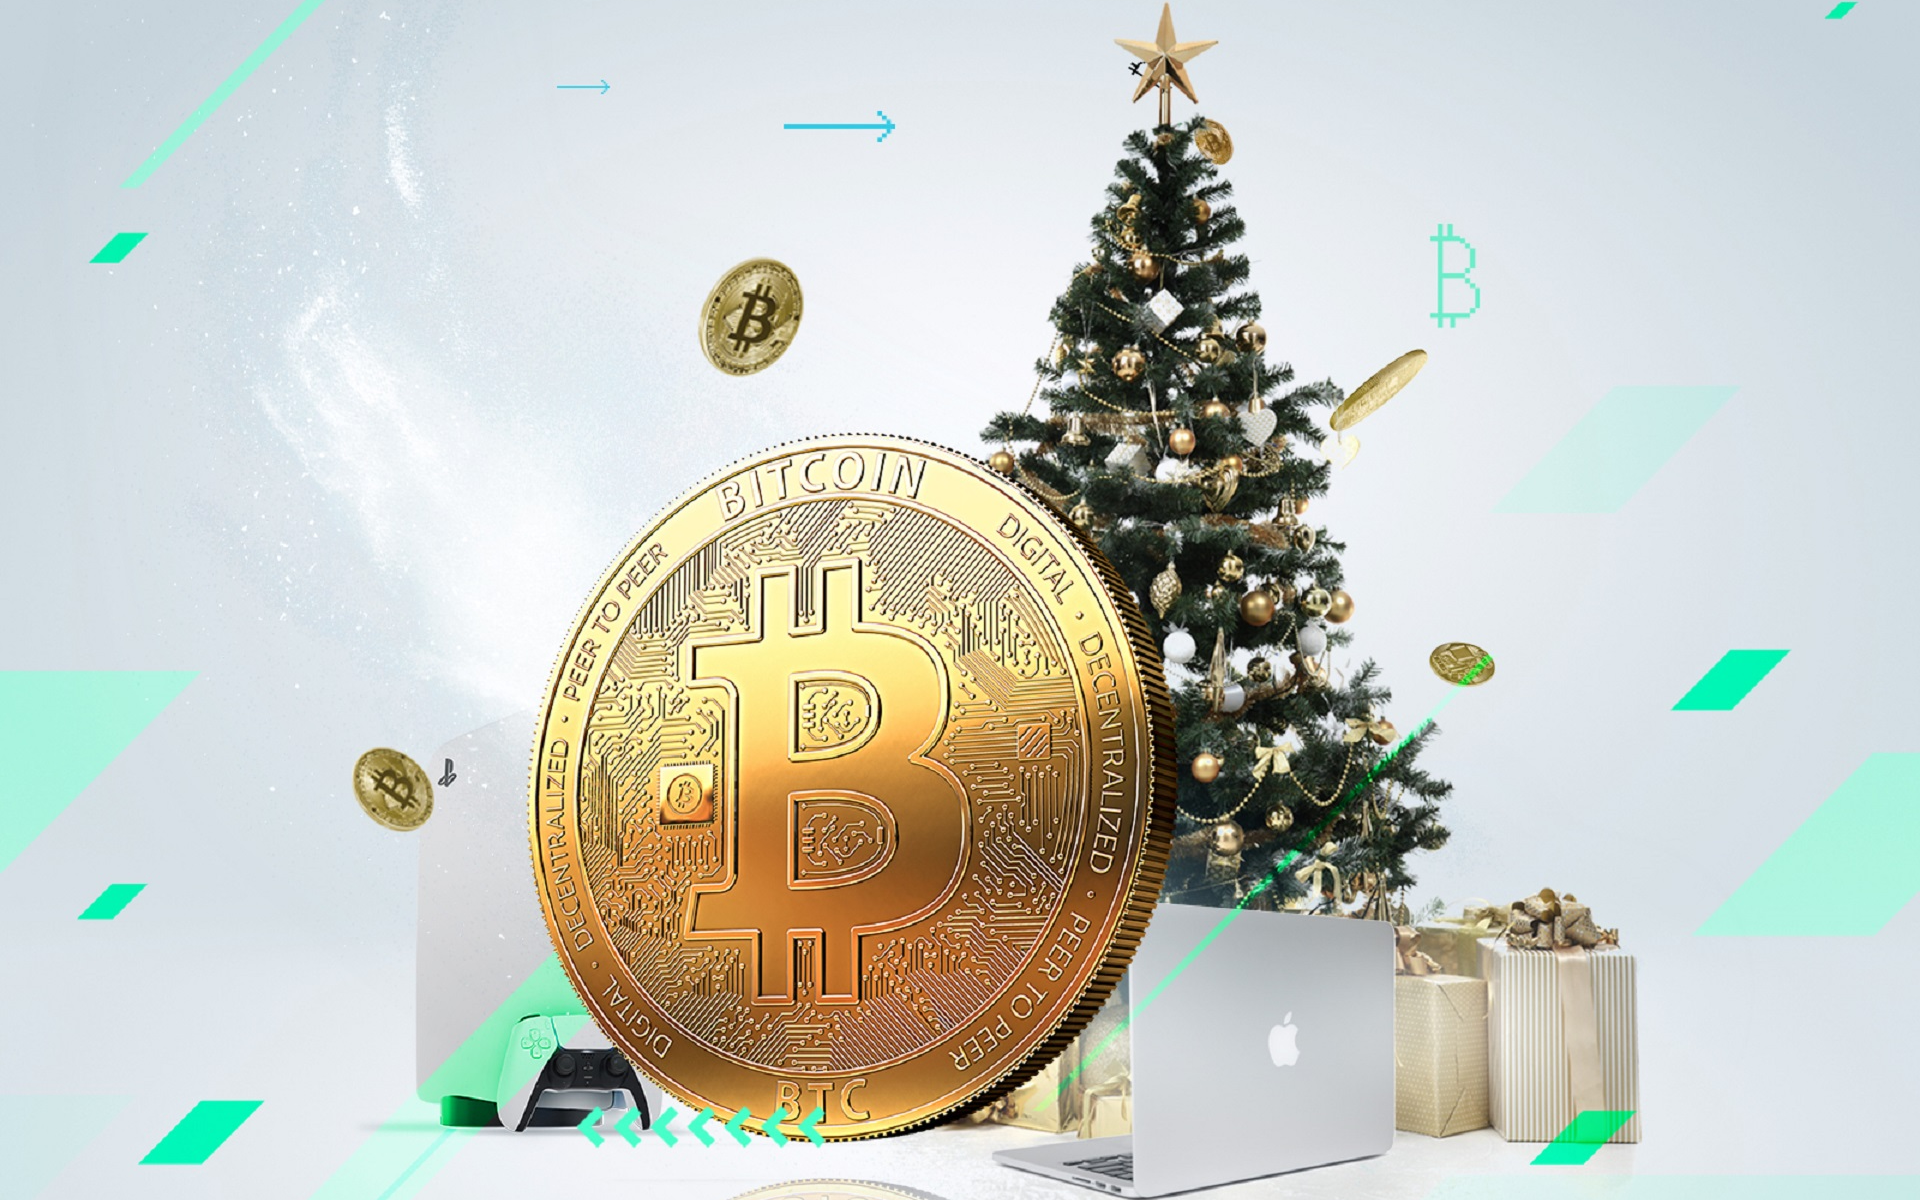 Bitcoin, PS5, And More: Win The Year's Hottest Tech With StormGain